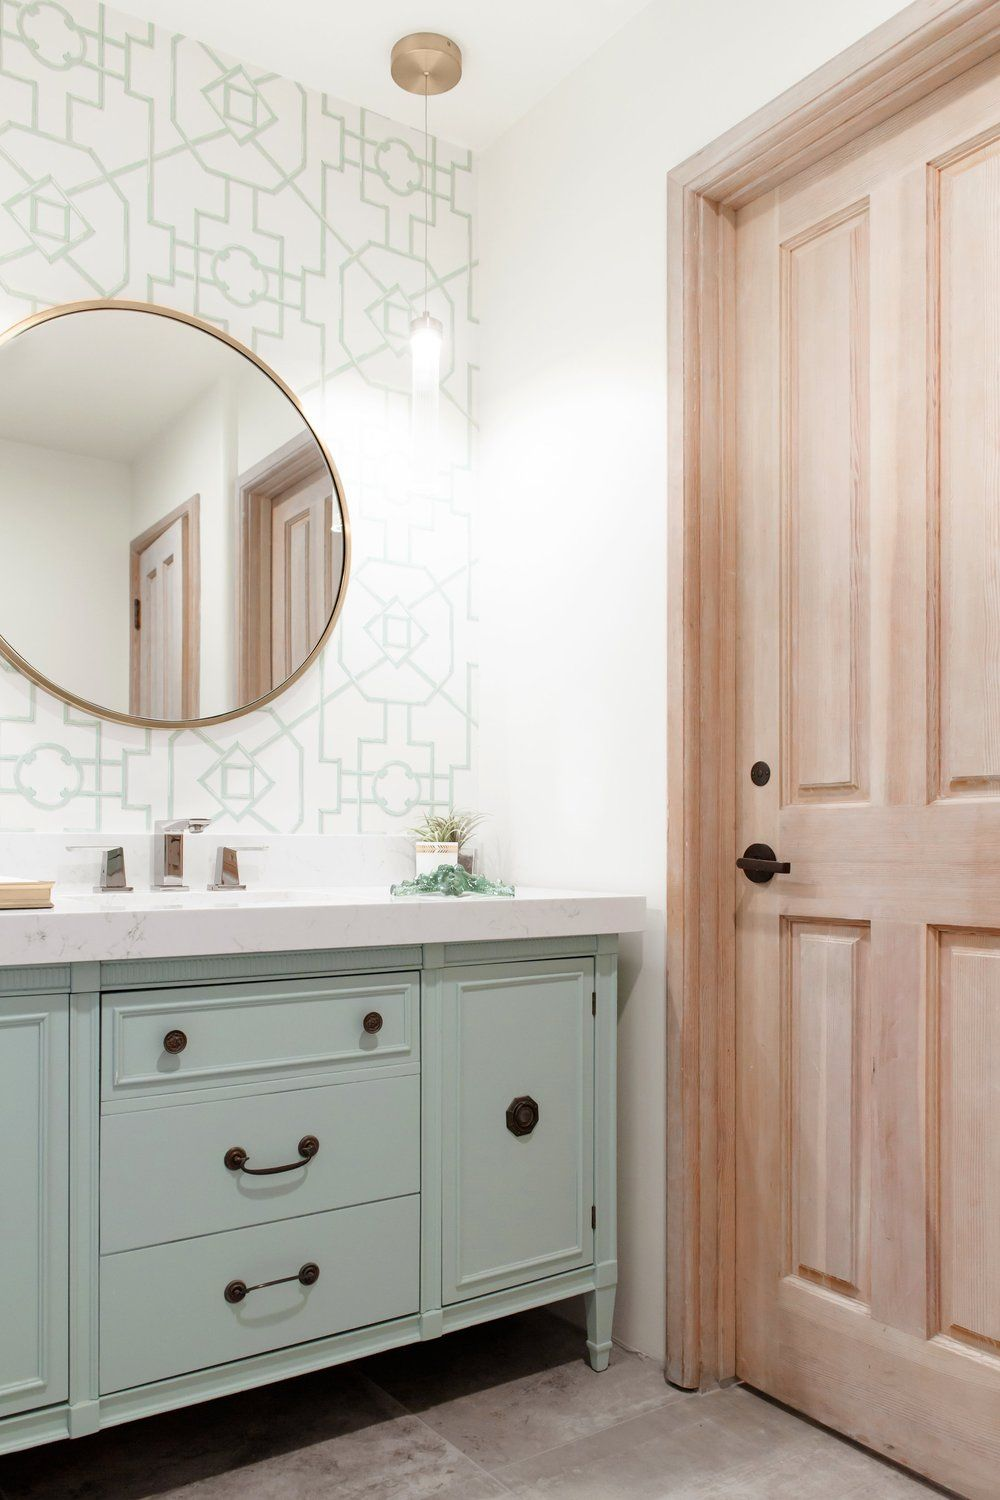 Bathroom Vanity San Diego Mint Green Pattern Wallpaper Oversized Circle Mirror And Painted